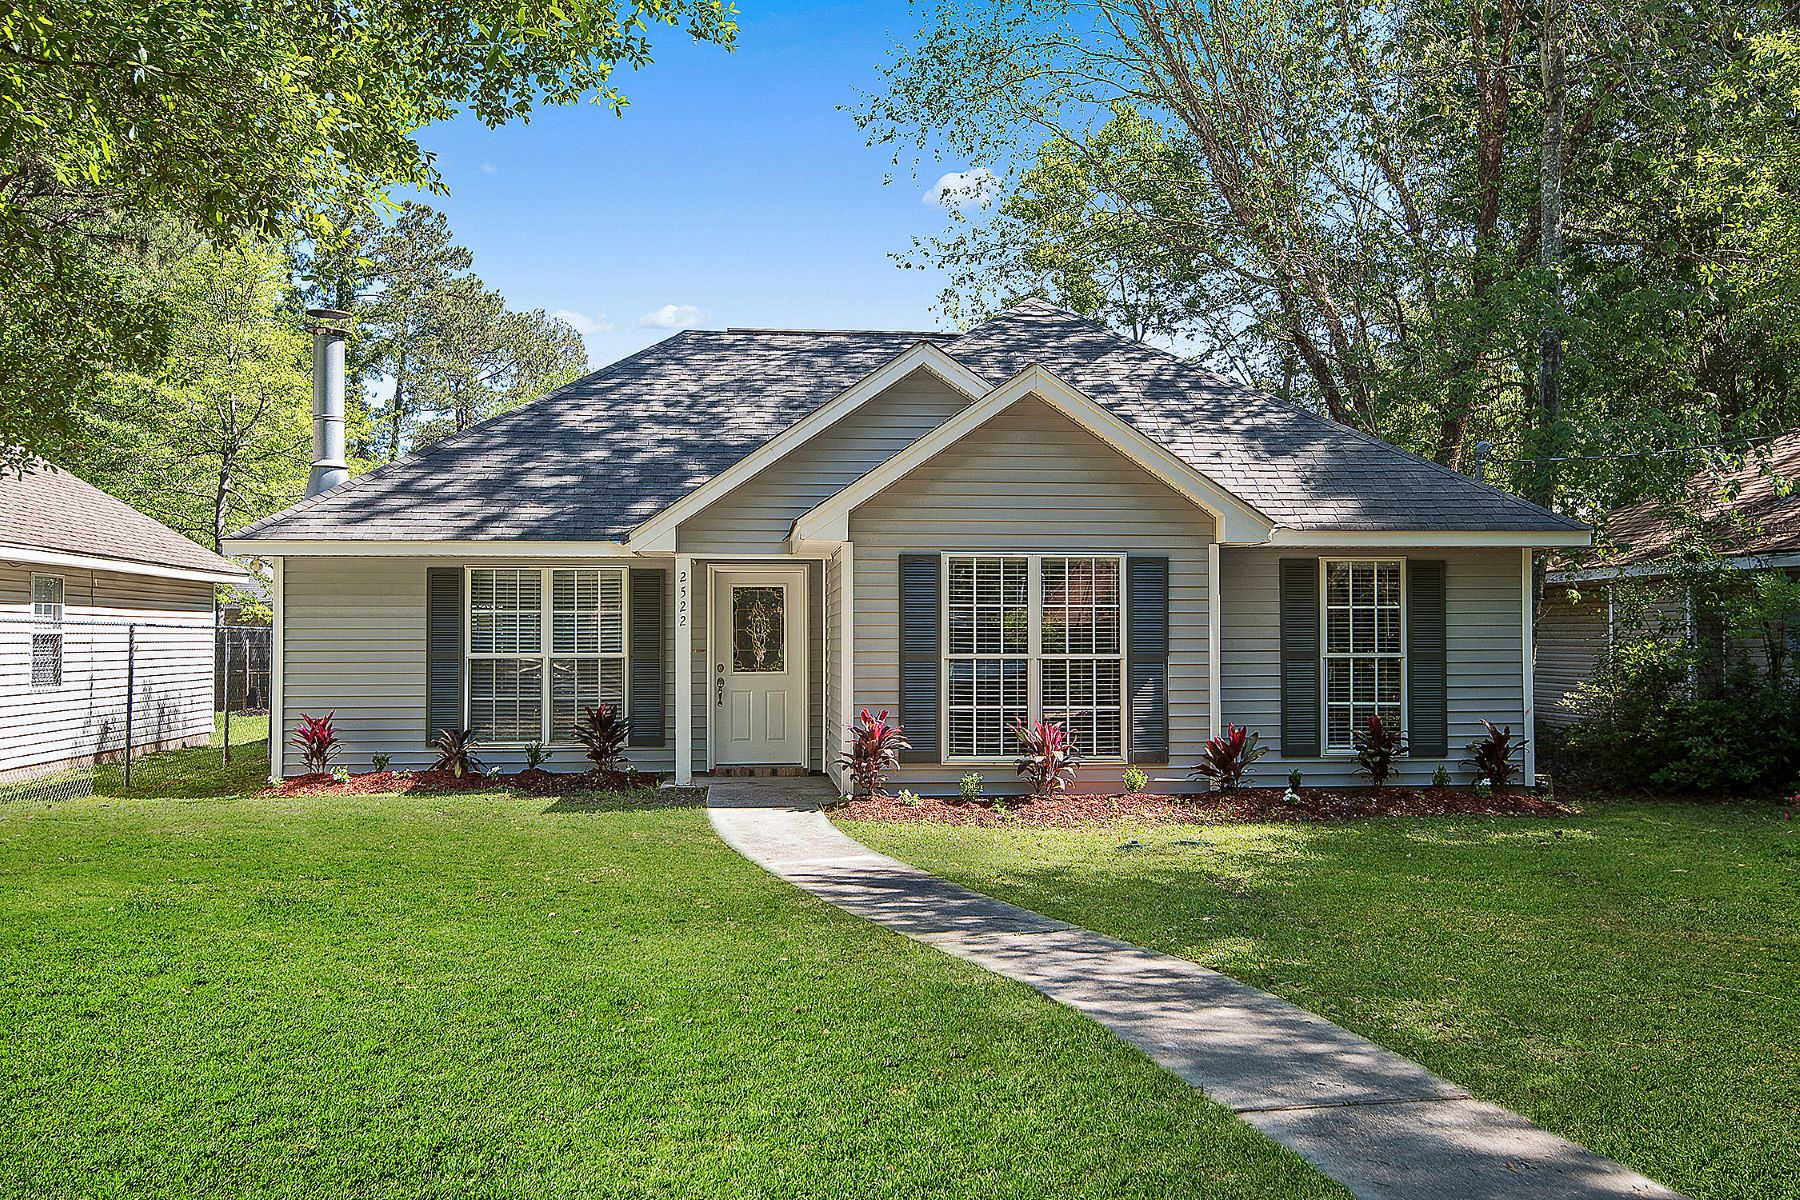 Single Family Home for Sale at 2522 Jay Street Slidell, Louisiana 70460 United States